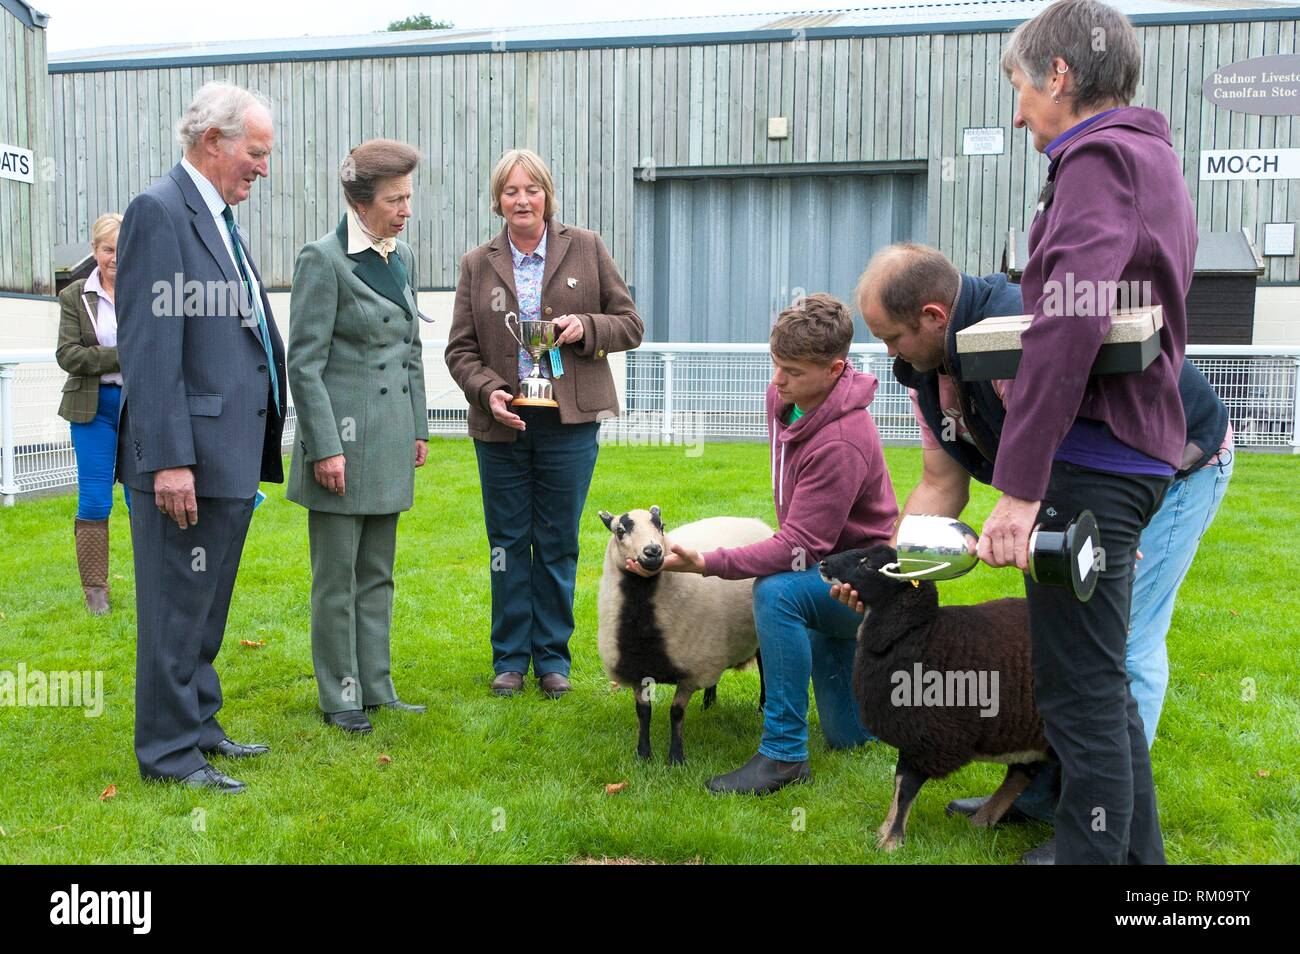 Anne, Princess Royal, visits the NSA Wales & Border Ram Sale at the Royal Welsh Showground in Builth Wells, in Powys, Wales, UK. - Stock Image